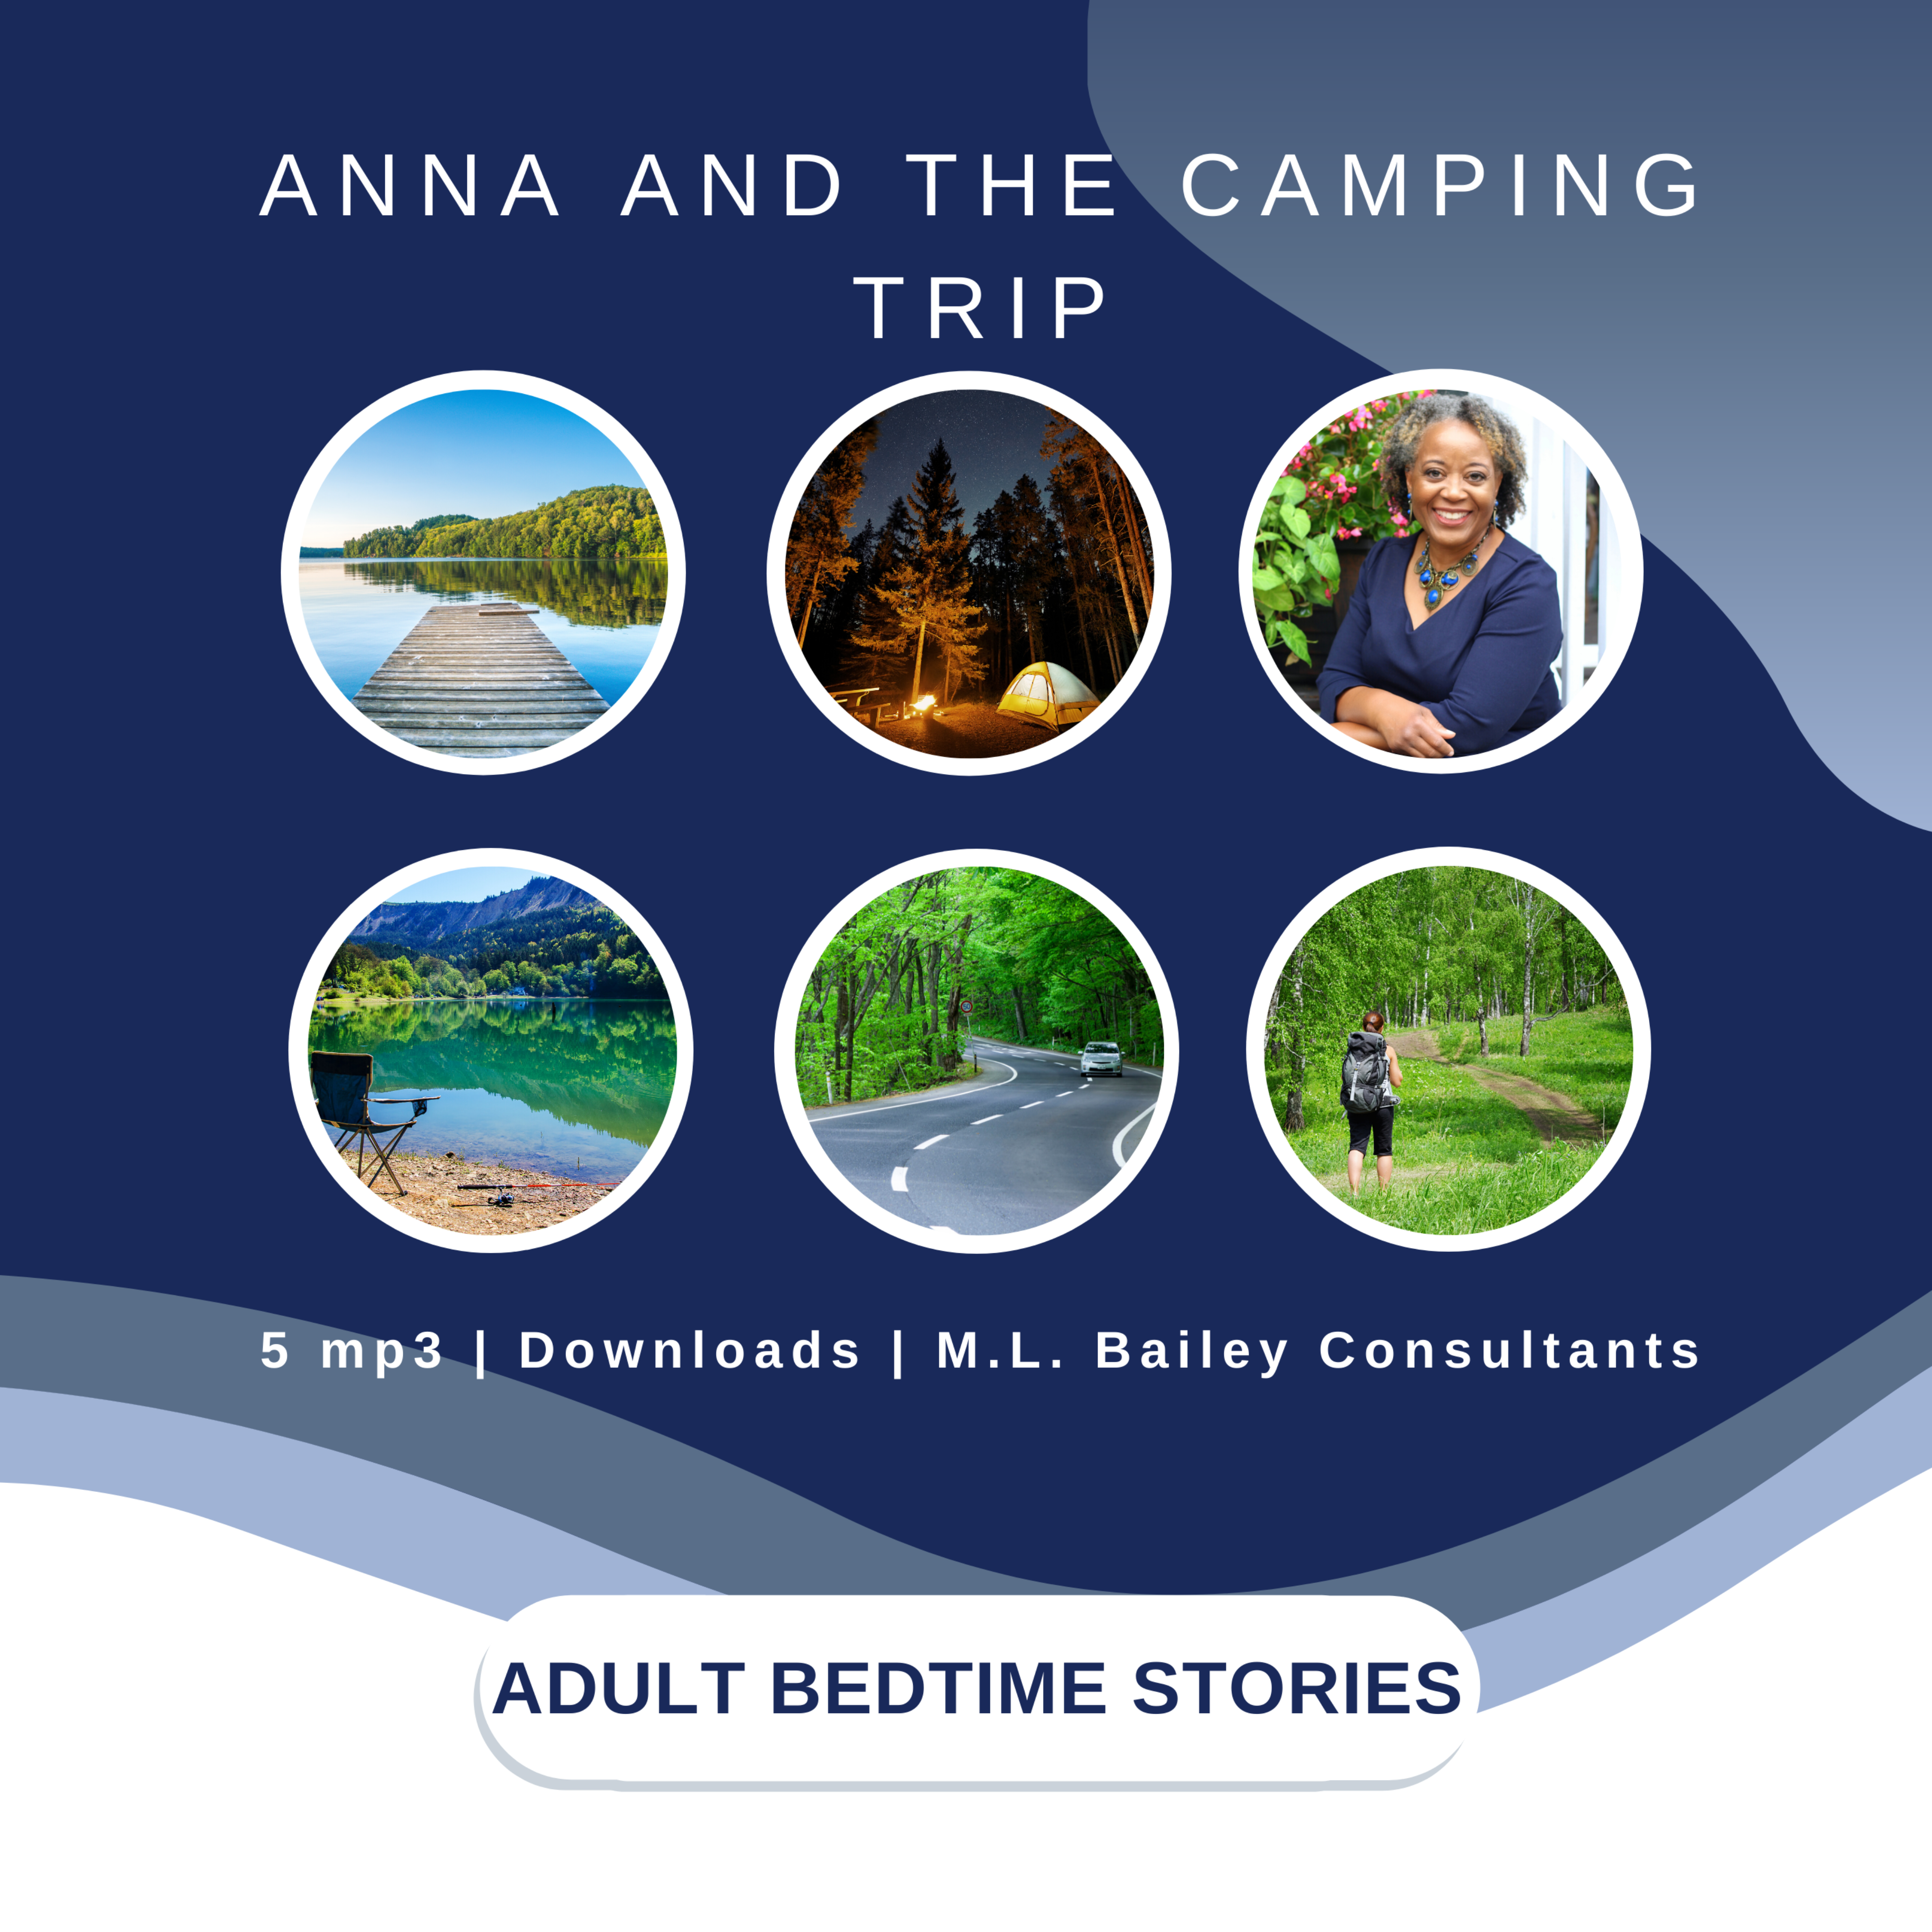 Anna and the Camping Trip